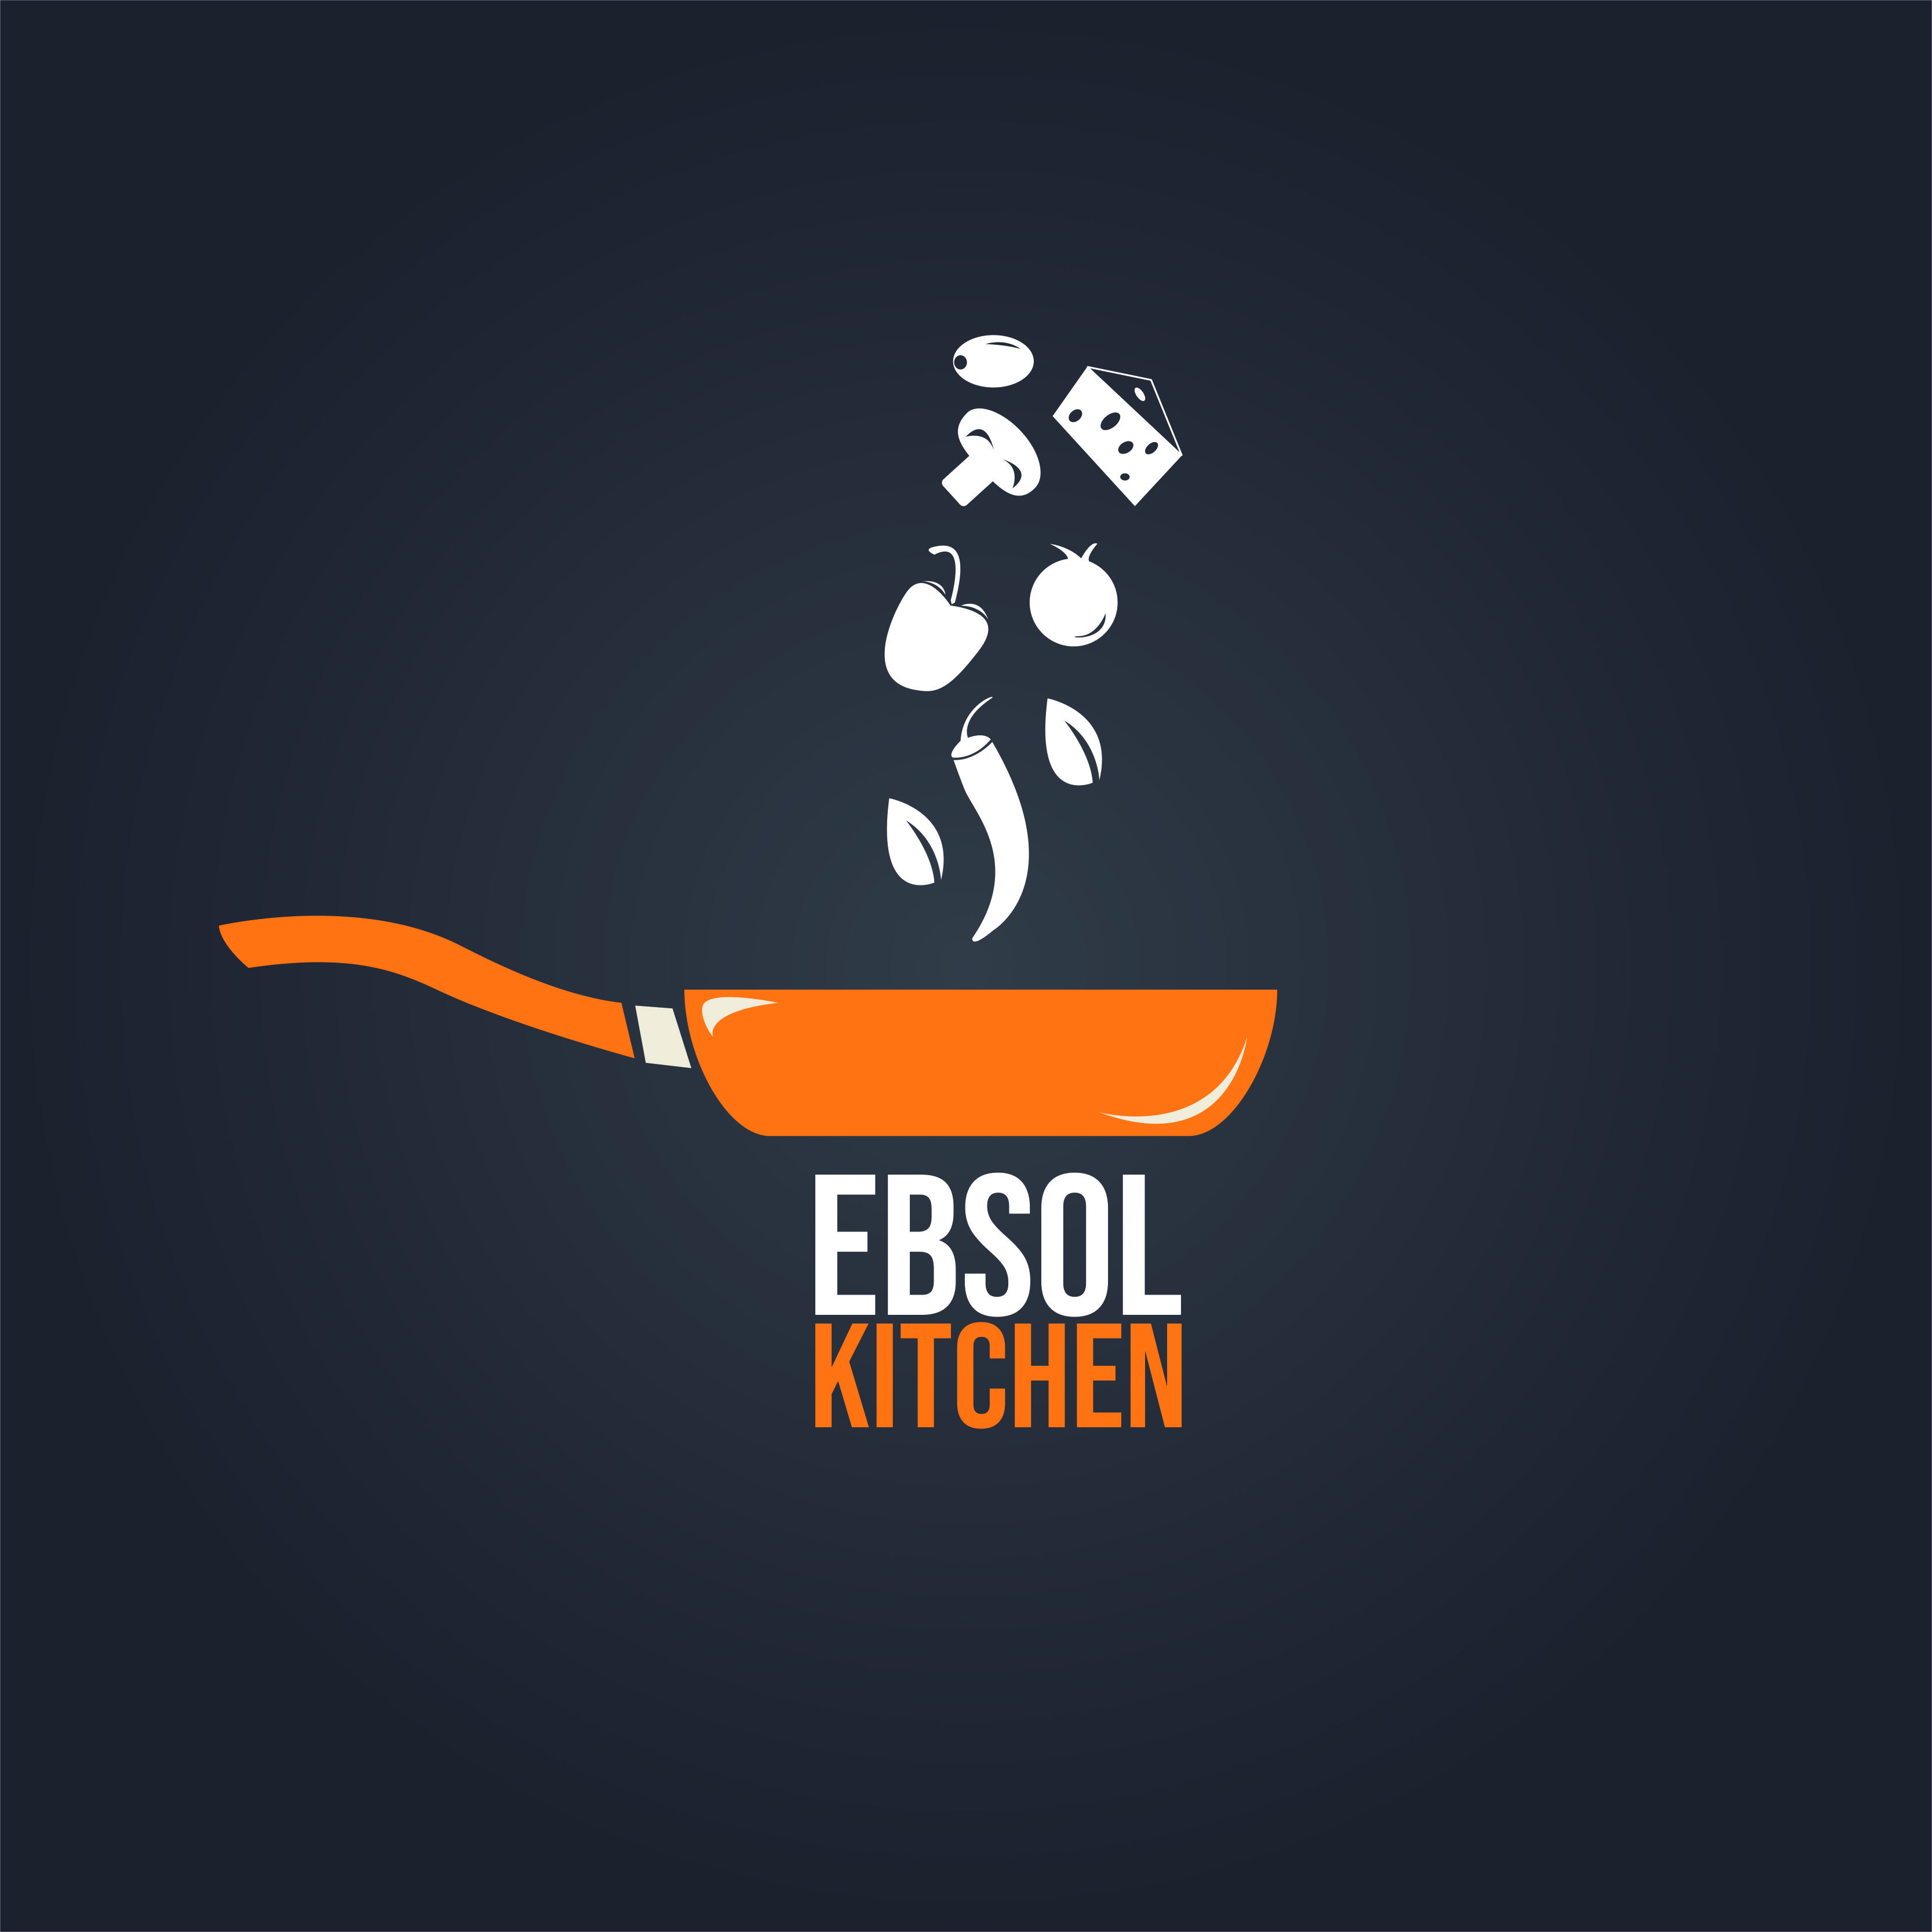 I Will Create a Professional Logo For Your Brand